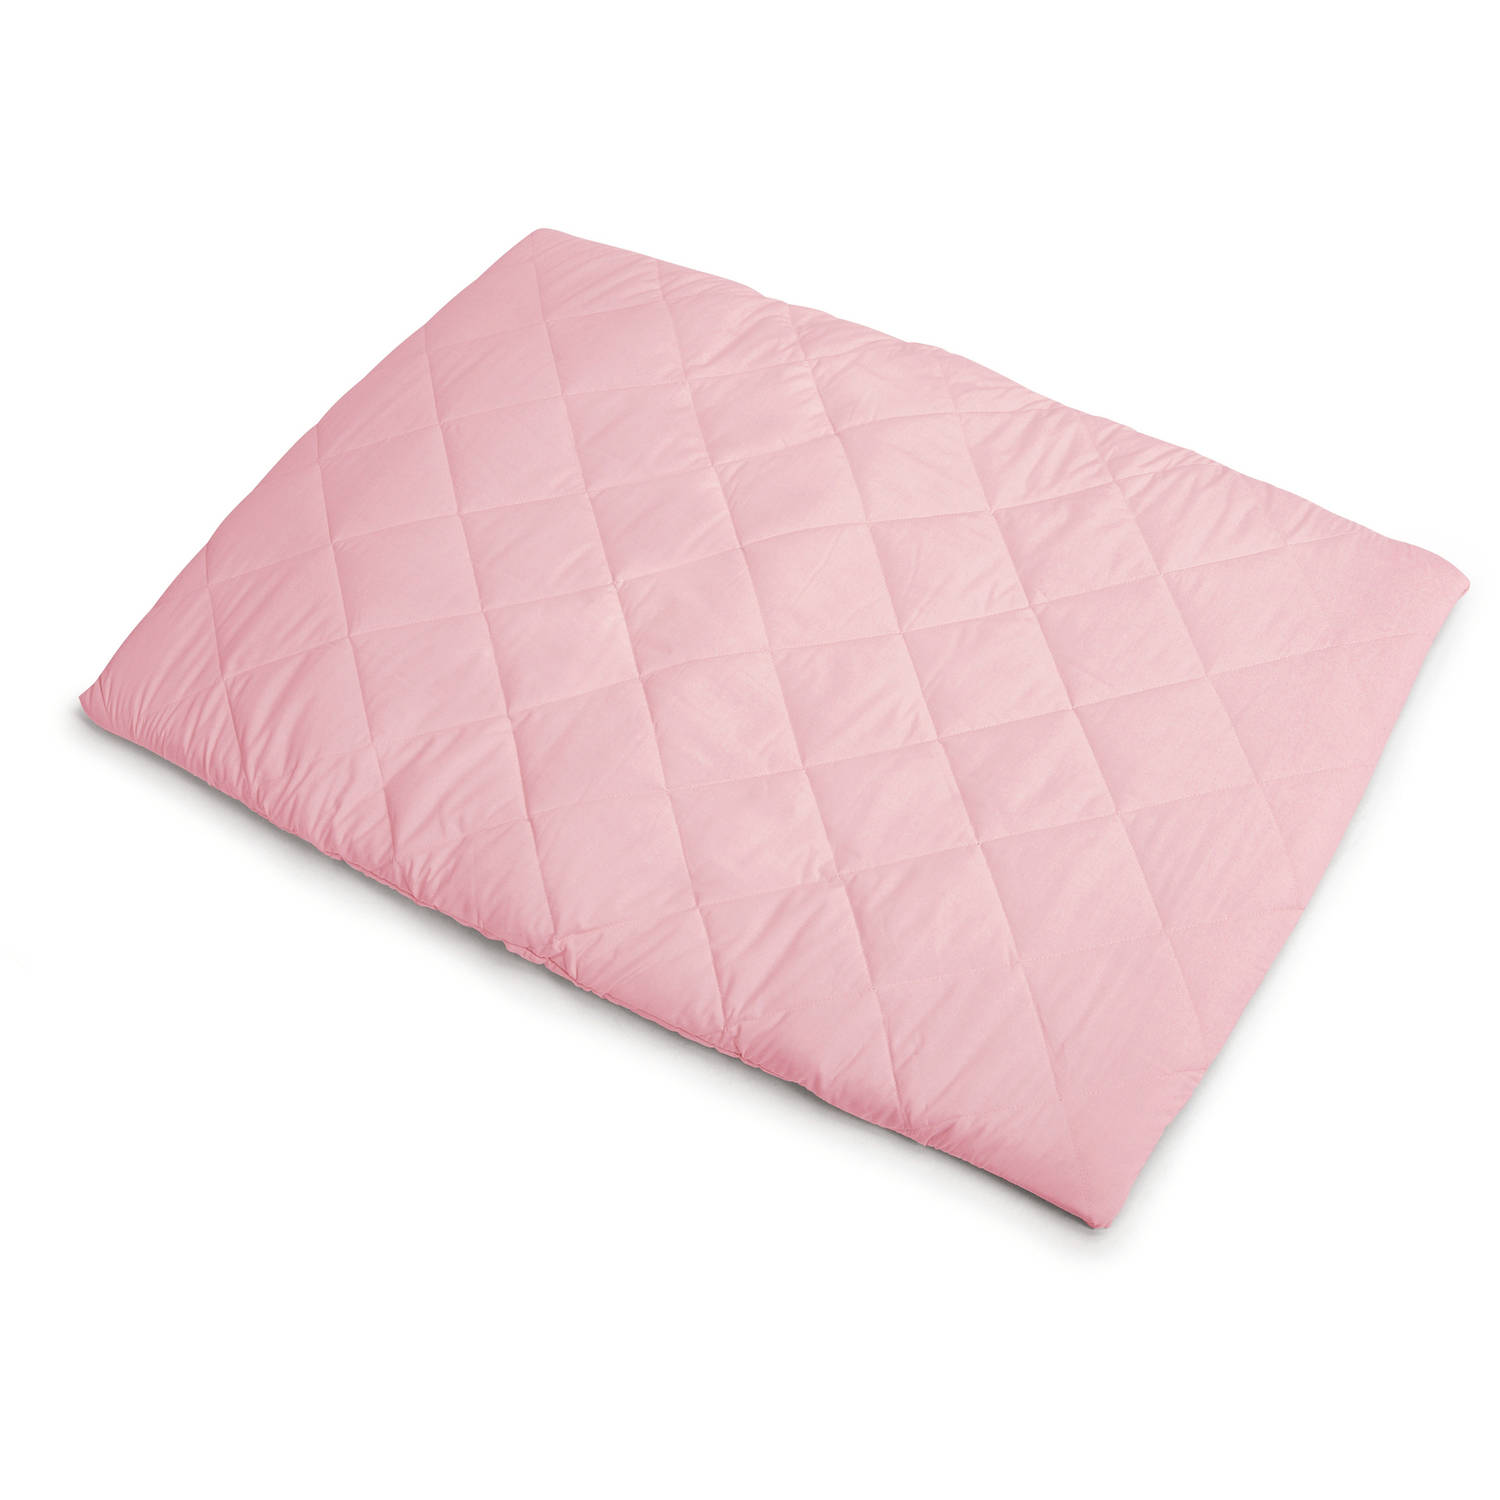 Graco Pack 'n Play Playard Sheet, Quilted, Powder Pink